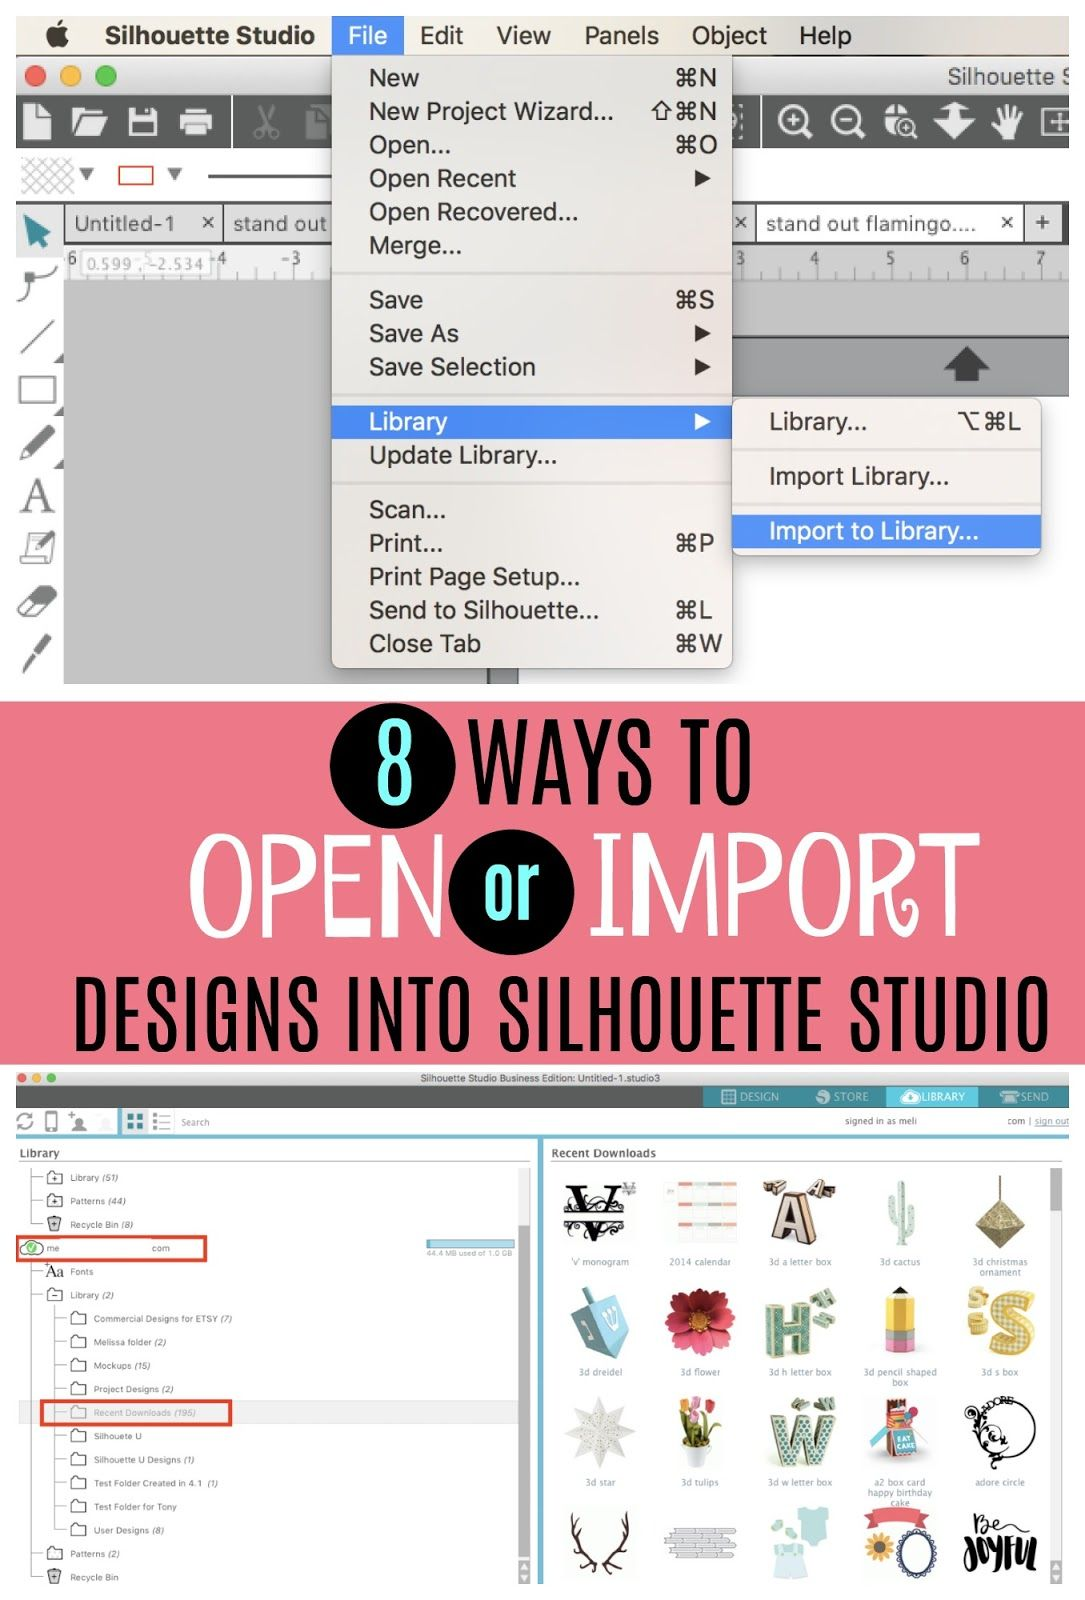 8 Ways to Import or Open Designs into Silhouette Studio